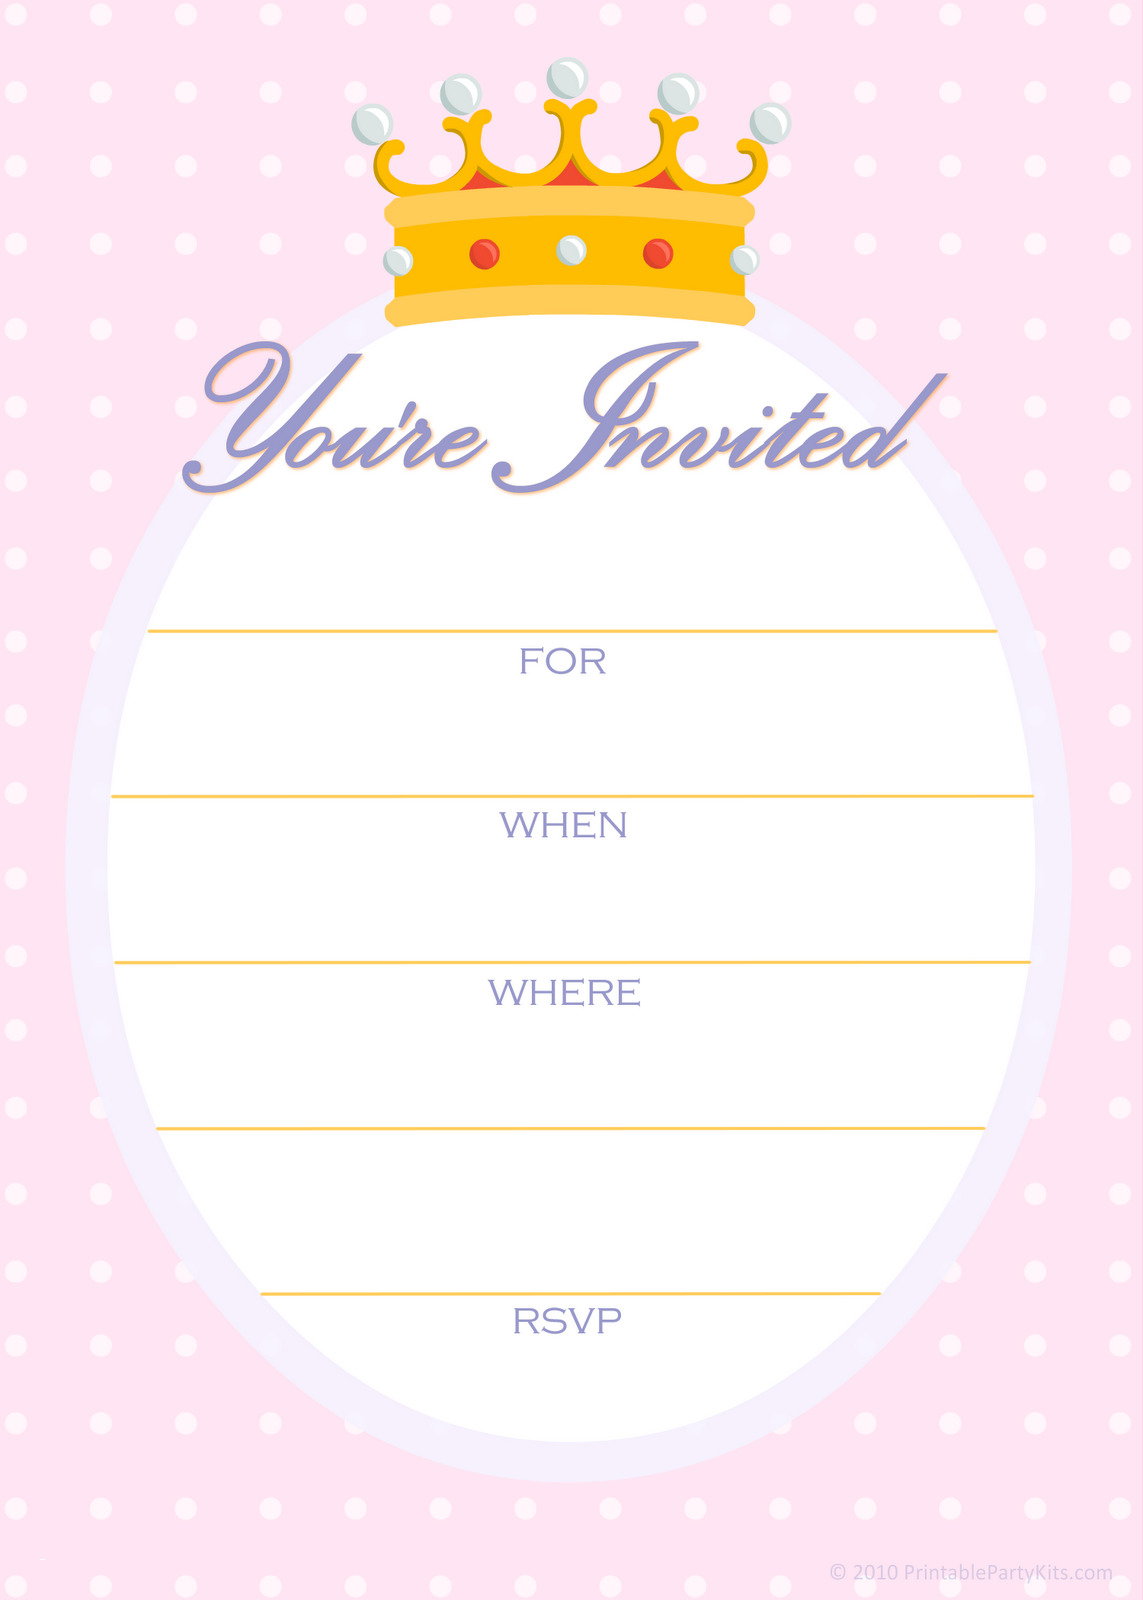 princess birthday template ; princess-birthday-invitations-template-luxury-free-printable-party-invitations-free-invitations-for-a-princess-of-princess-birthday-invitations-template